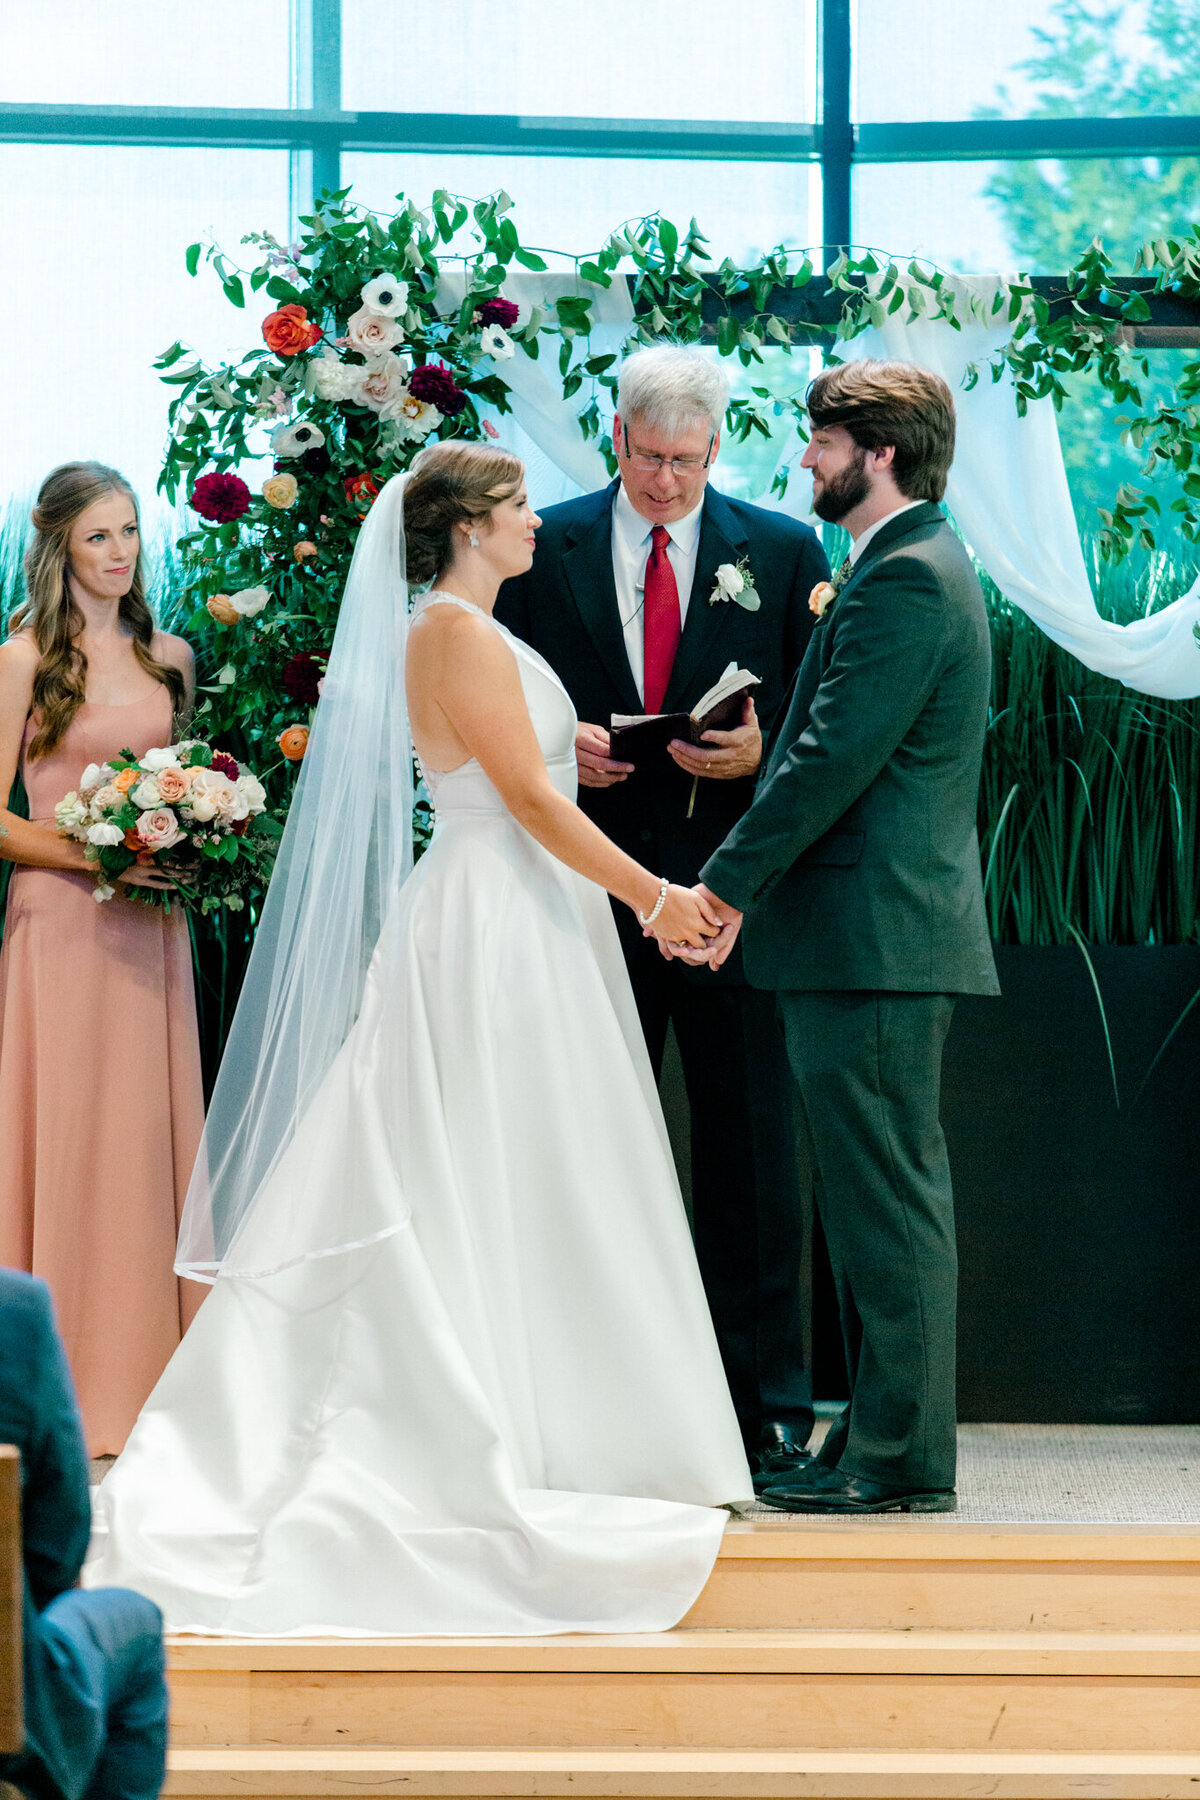 Kaylee & Michael's Wedding at Watermark Community Church | Dallas Wedding Photographer | Sami Kathryn Photography-113